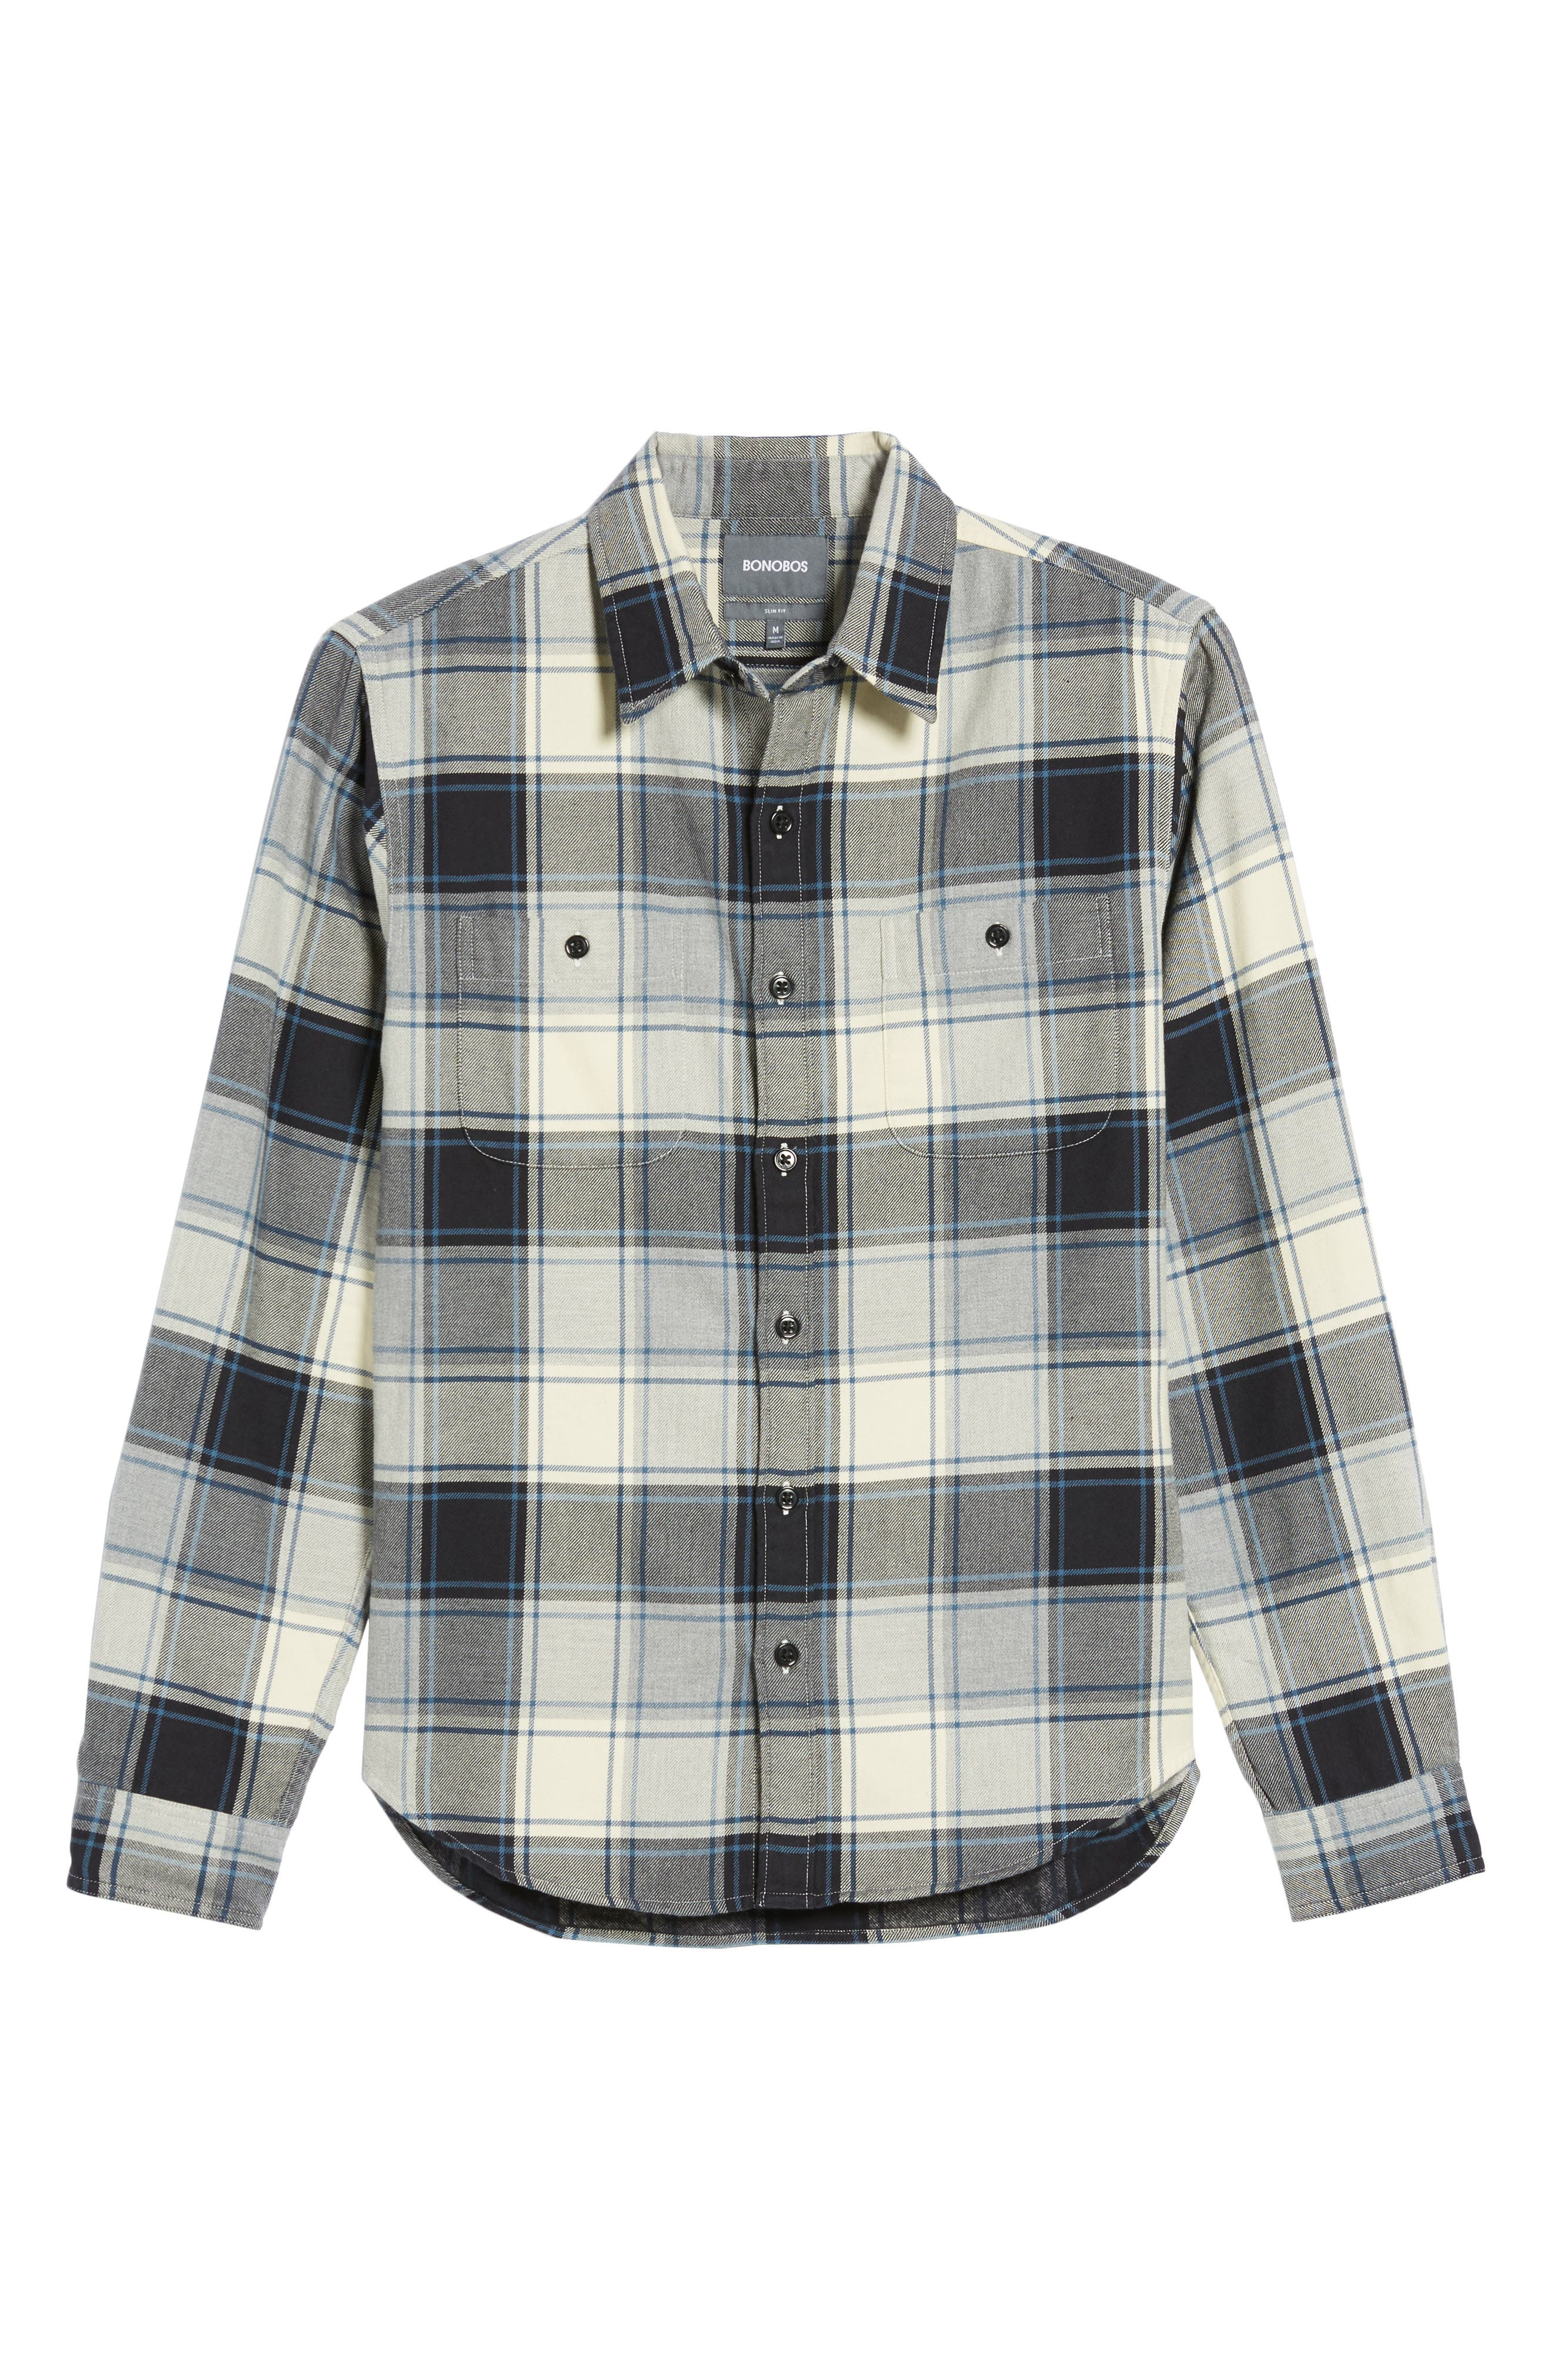 Slim Fit Plaid Flannel Shirt,                             Alternate thumbnail 6, color,                             House Flannel/ Real Teal